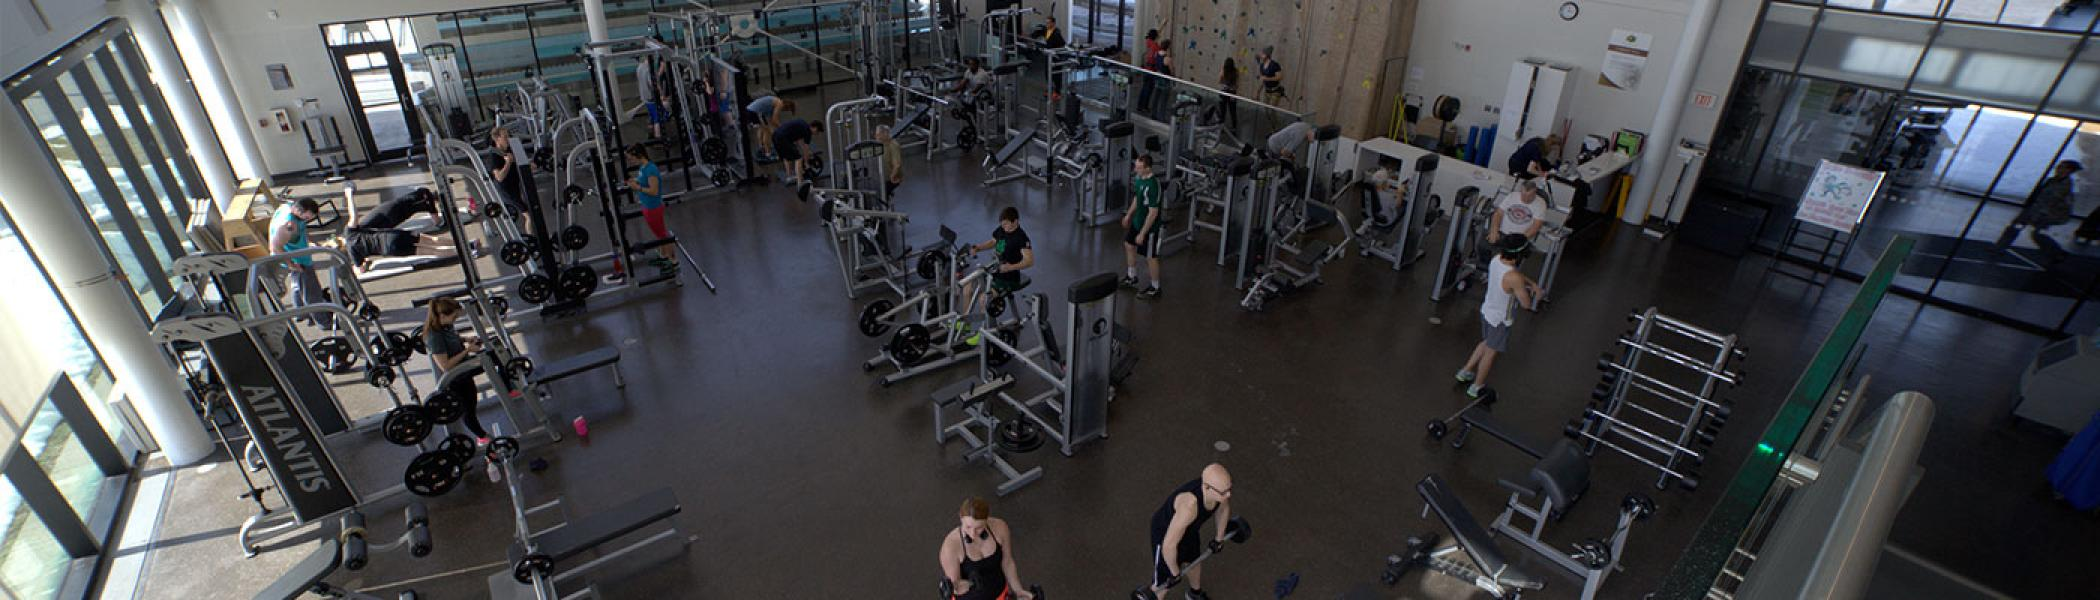 Gym-goers working using the equipment available at Trent's Athletic Centre.